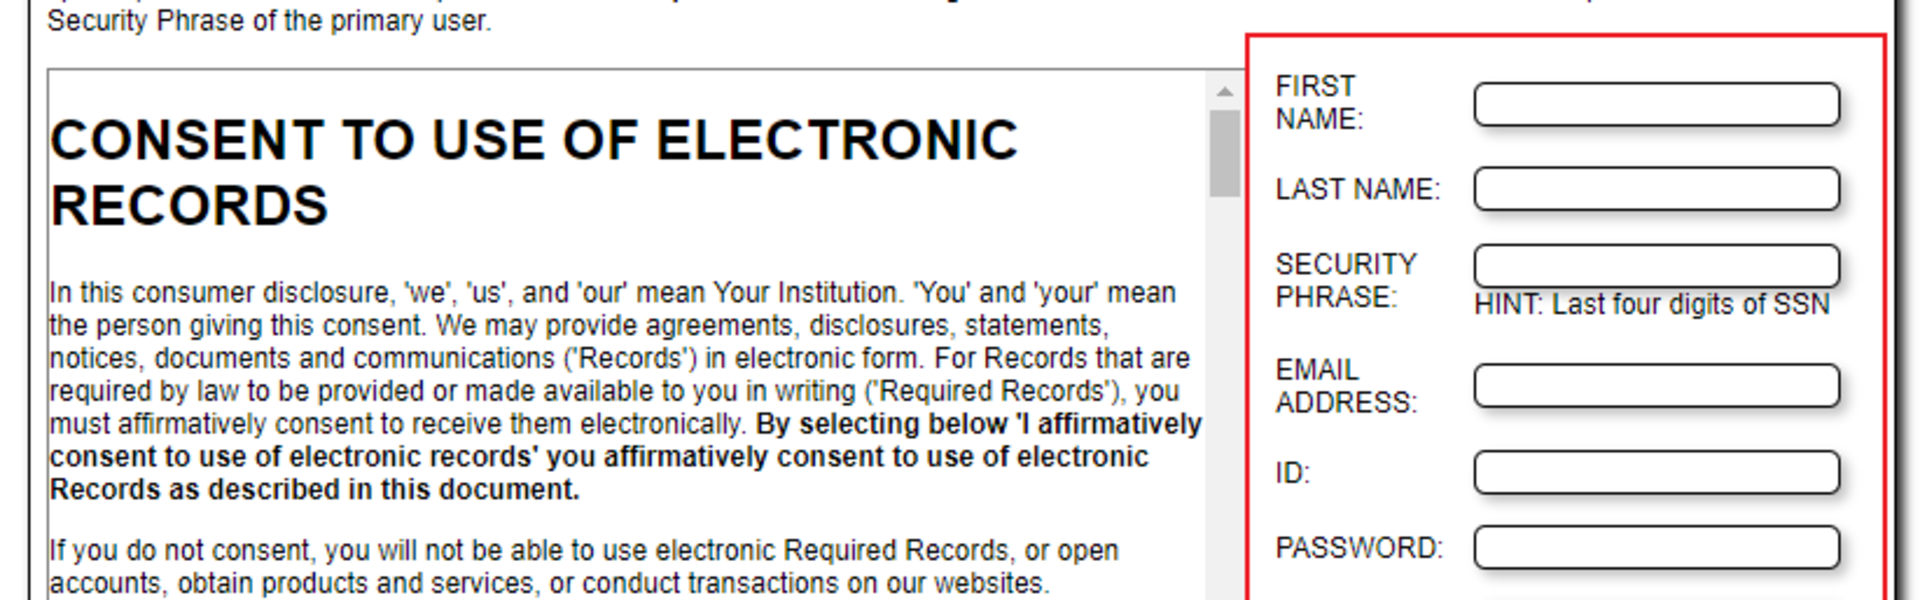 Consent to Use of Electronic Records Screen